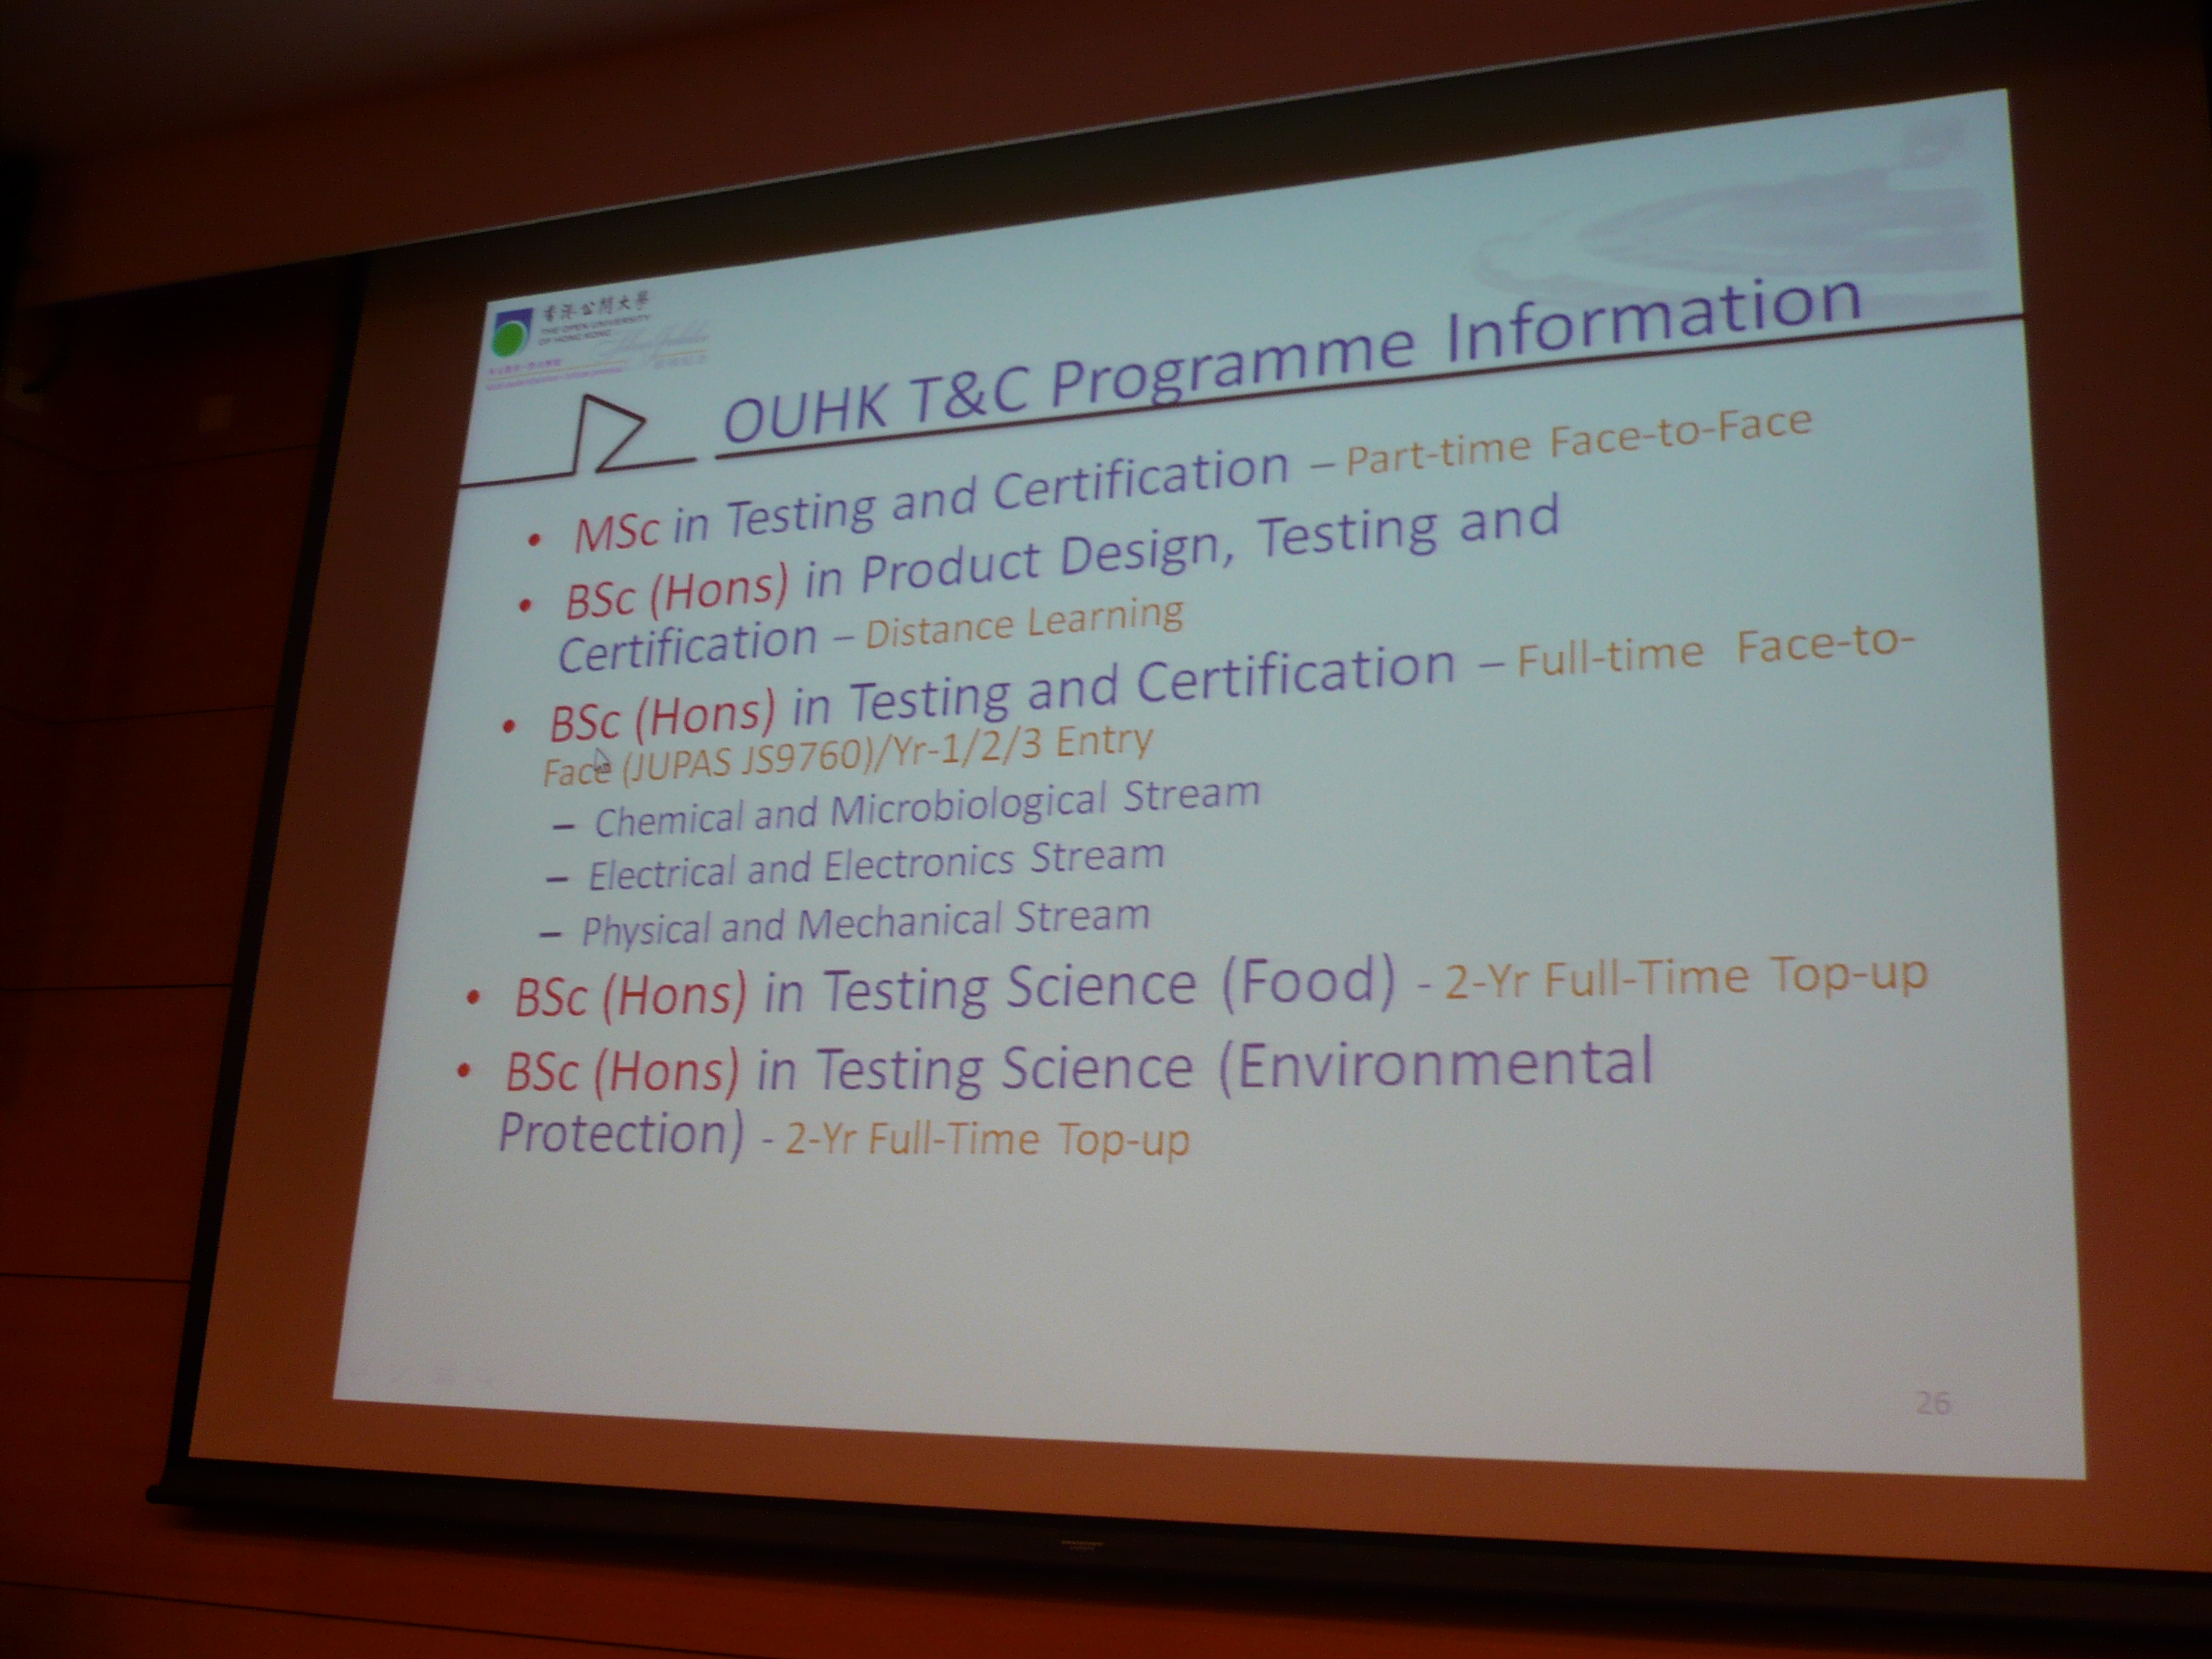 Seminar on the BSc in Testing Science/Testing and Certification Programmes (OUHK) - Photo - 9